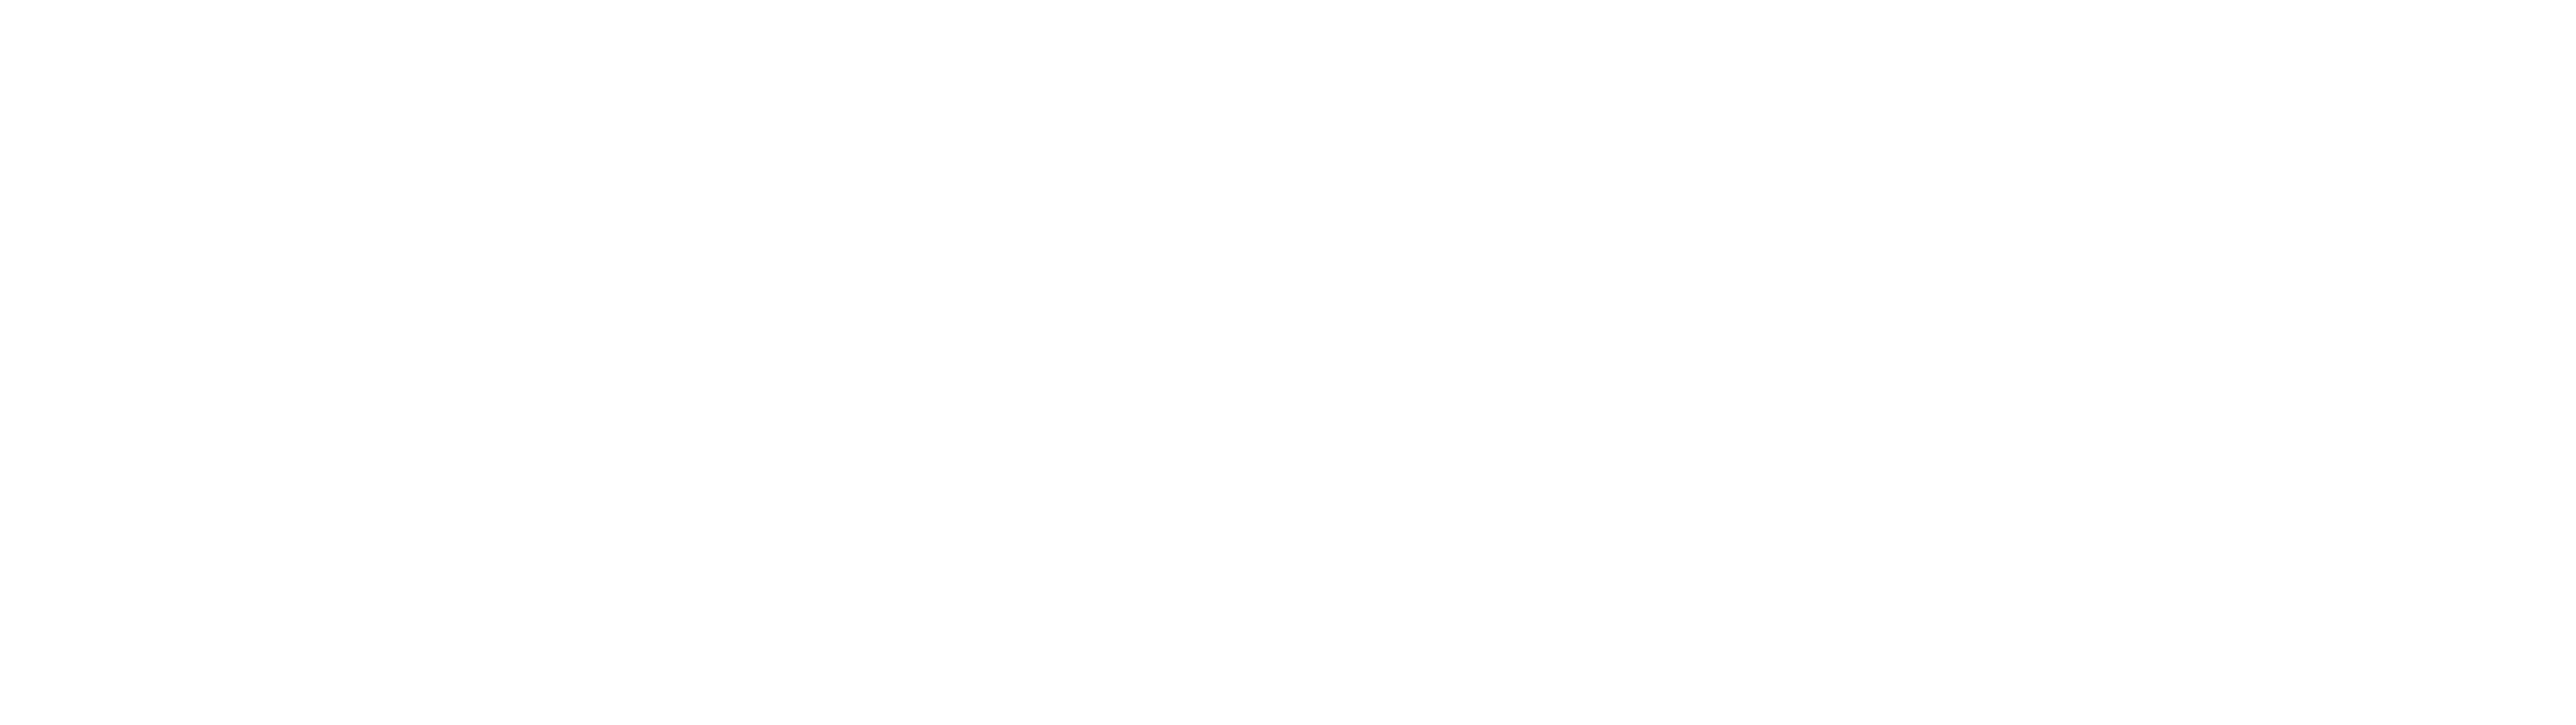 Lynchypx Photography – Architecture, Real Estate & Events Photography Sydney